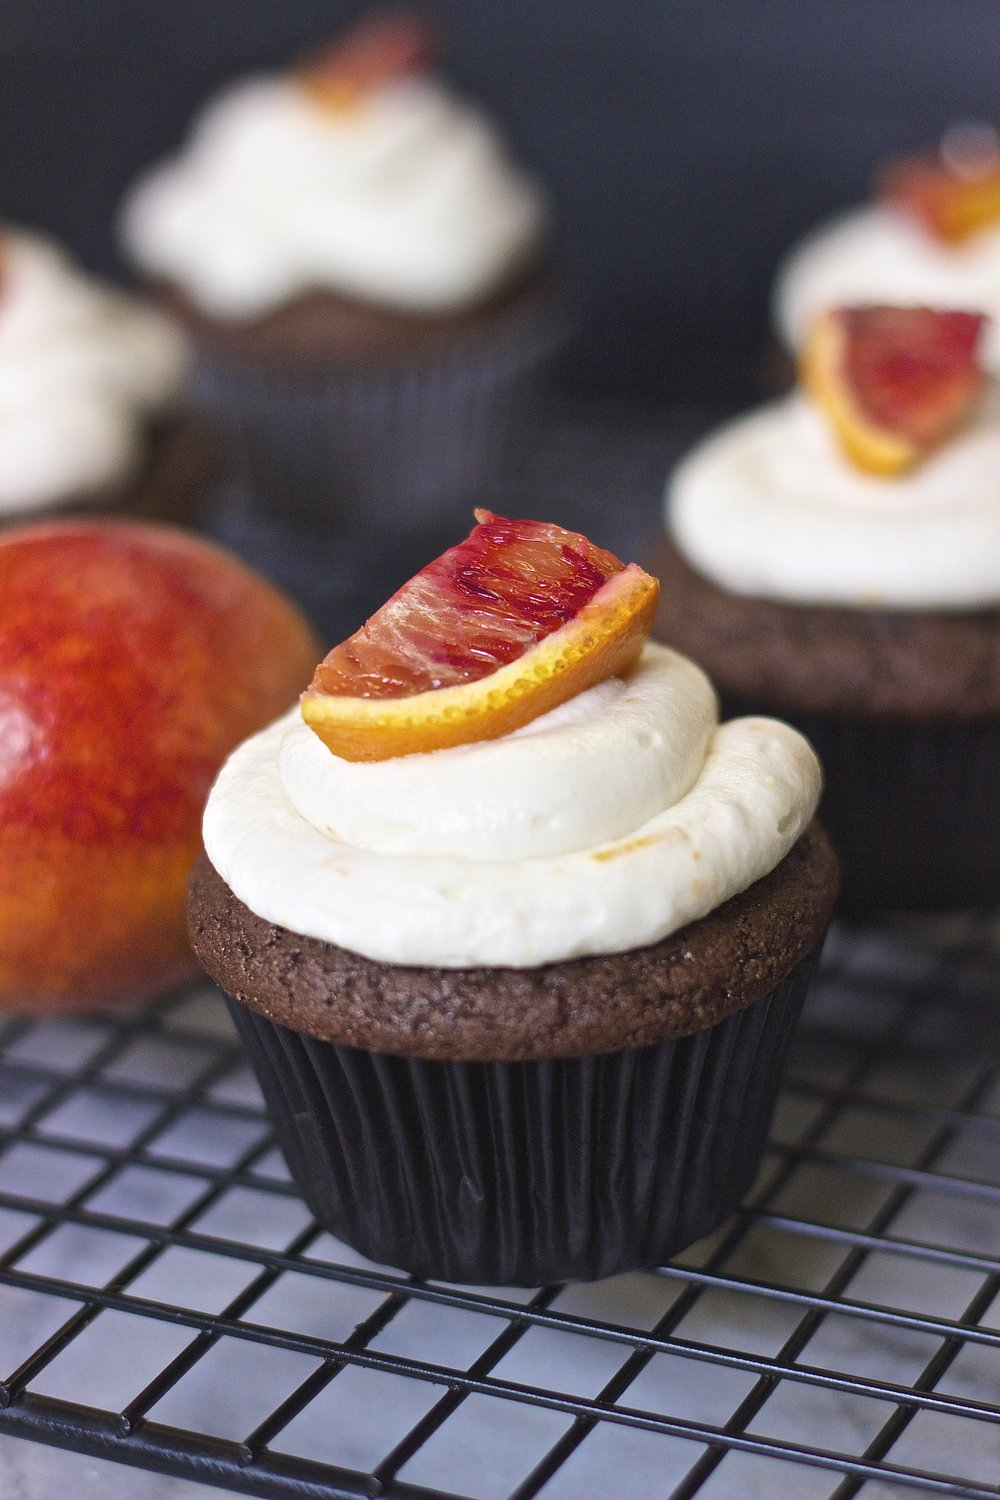 Chocolate Blood Orange Cupcakes with Coconut Cream Frosting {vegan} | Kneading Home